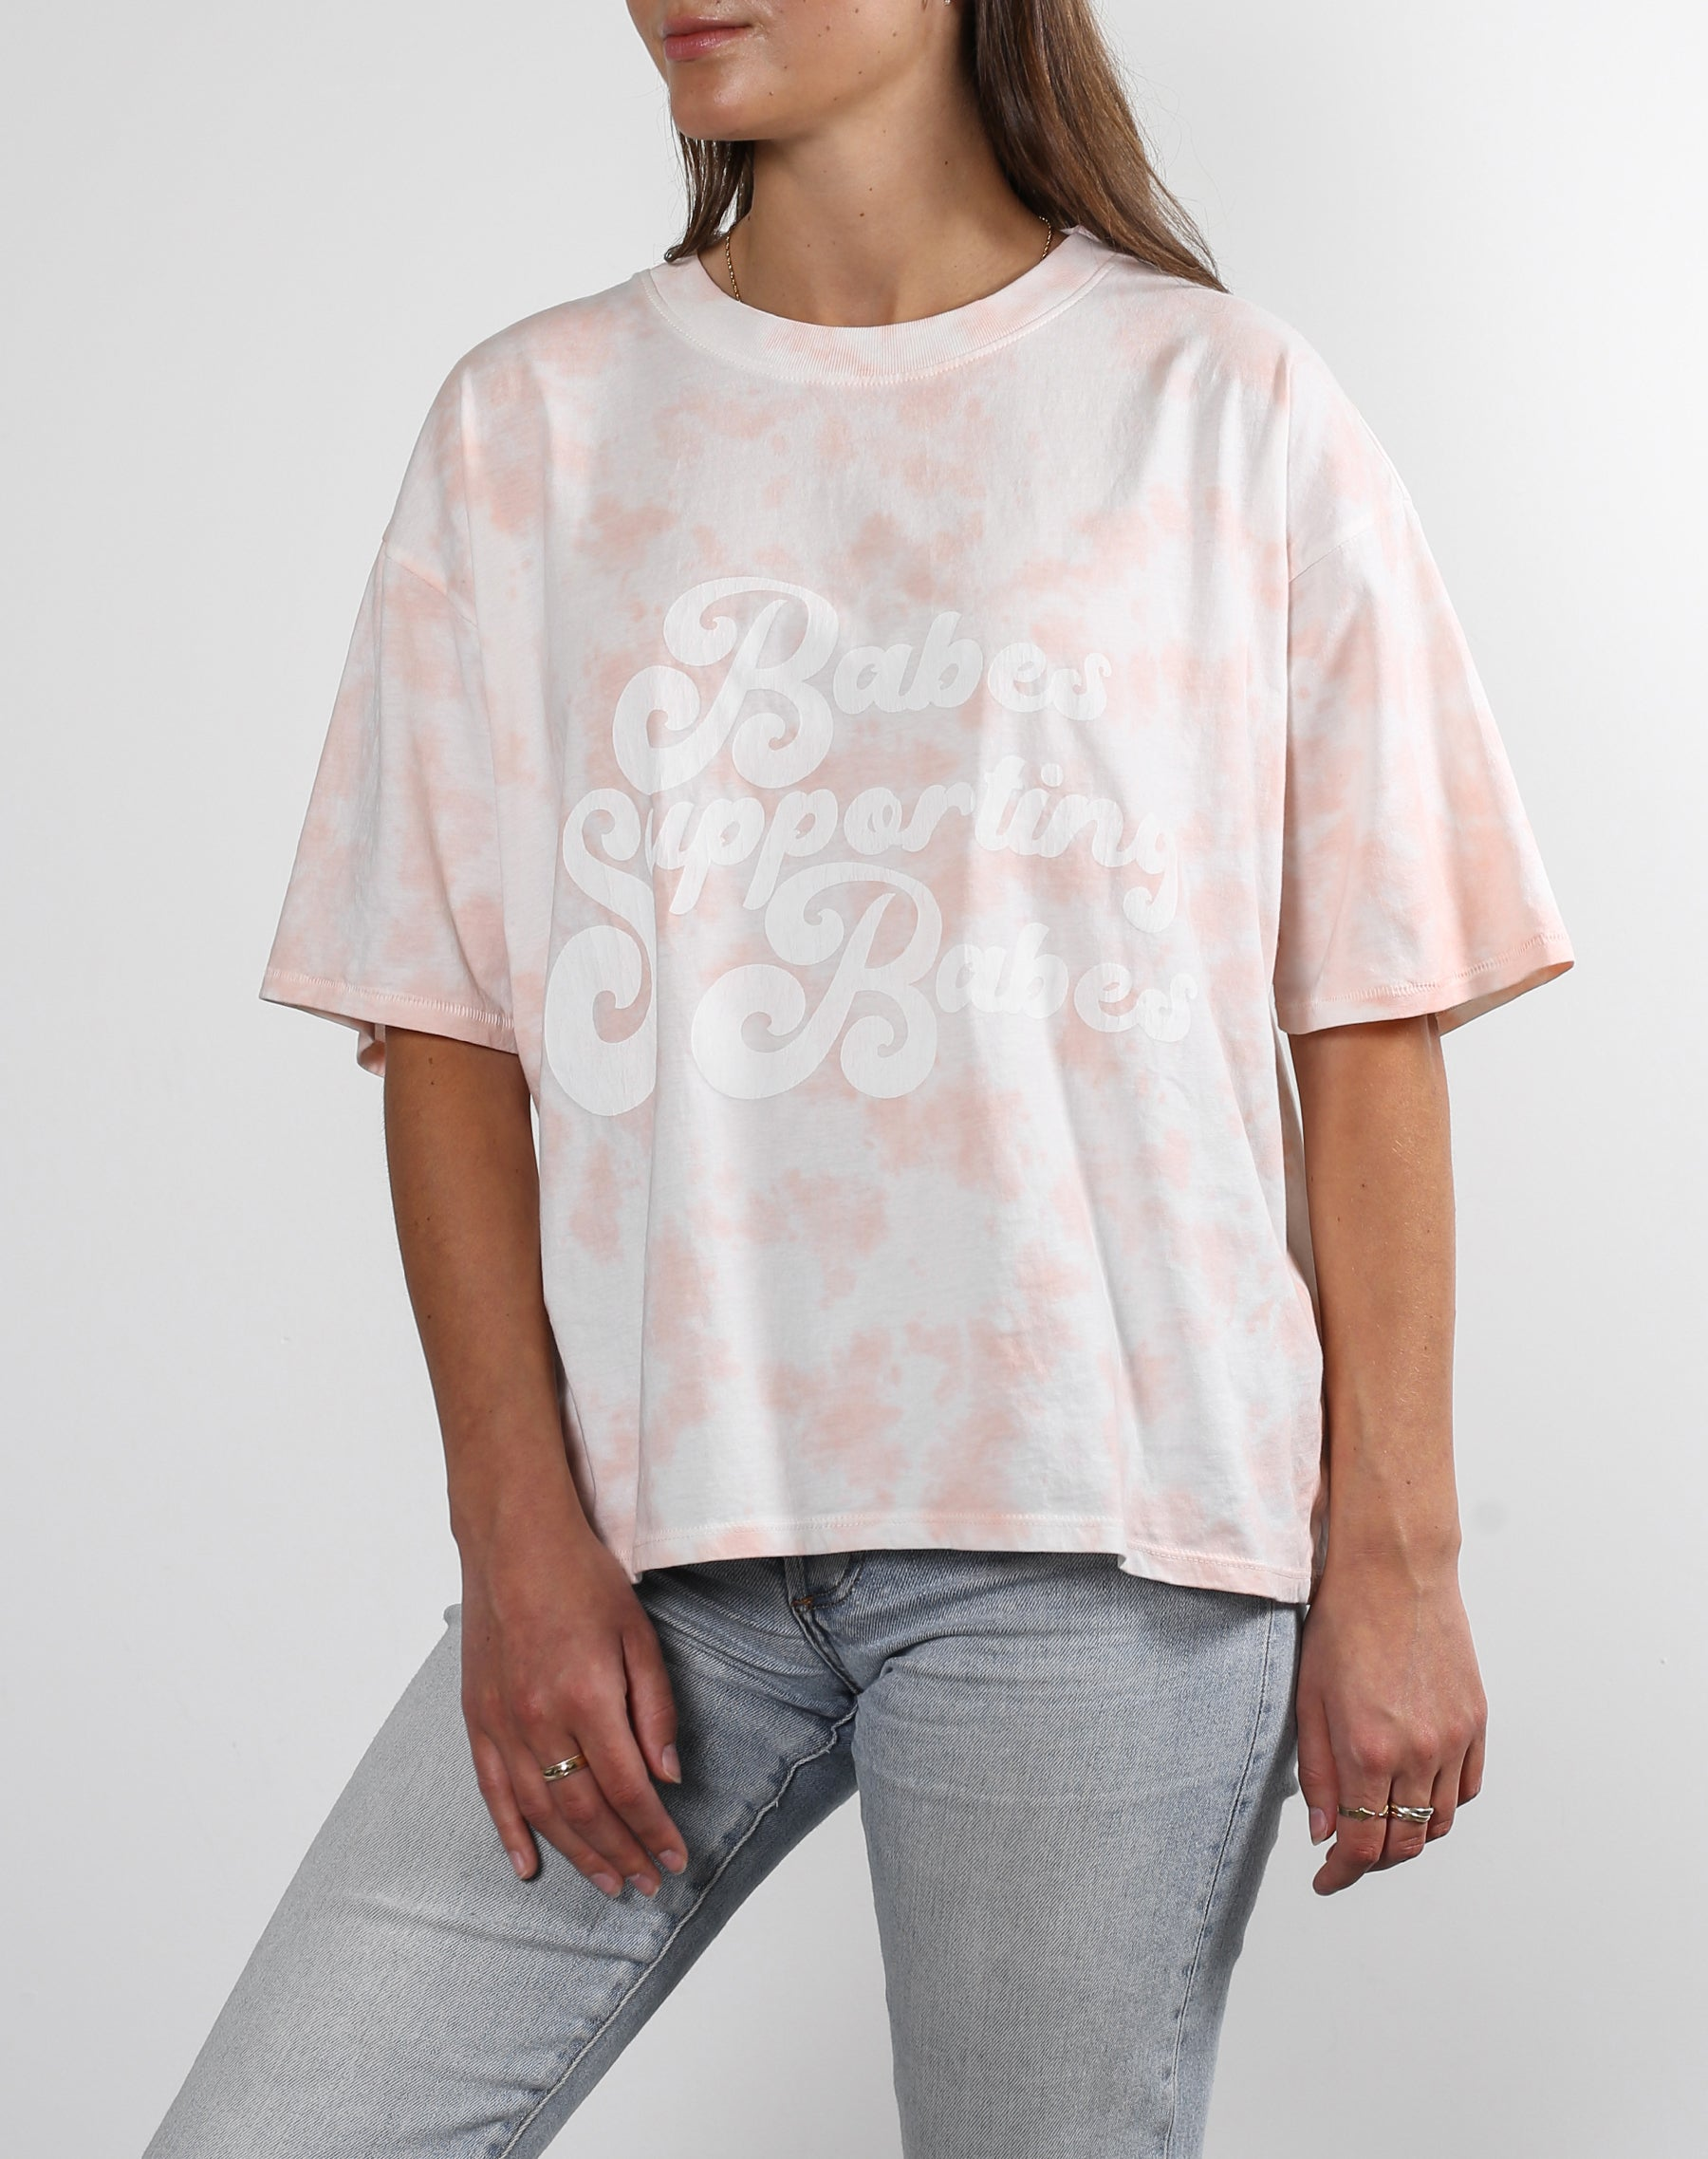 This is an Ecommerce photo of a model wearing the Babes Supporting Babes Boxy Crew Neck Tee in Pink Marble Dye